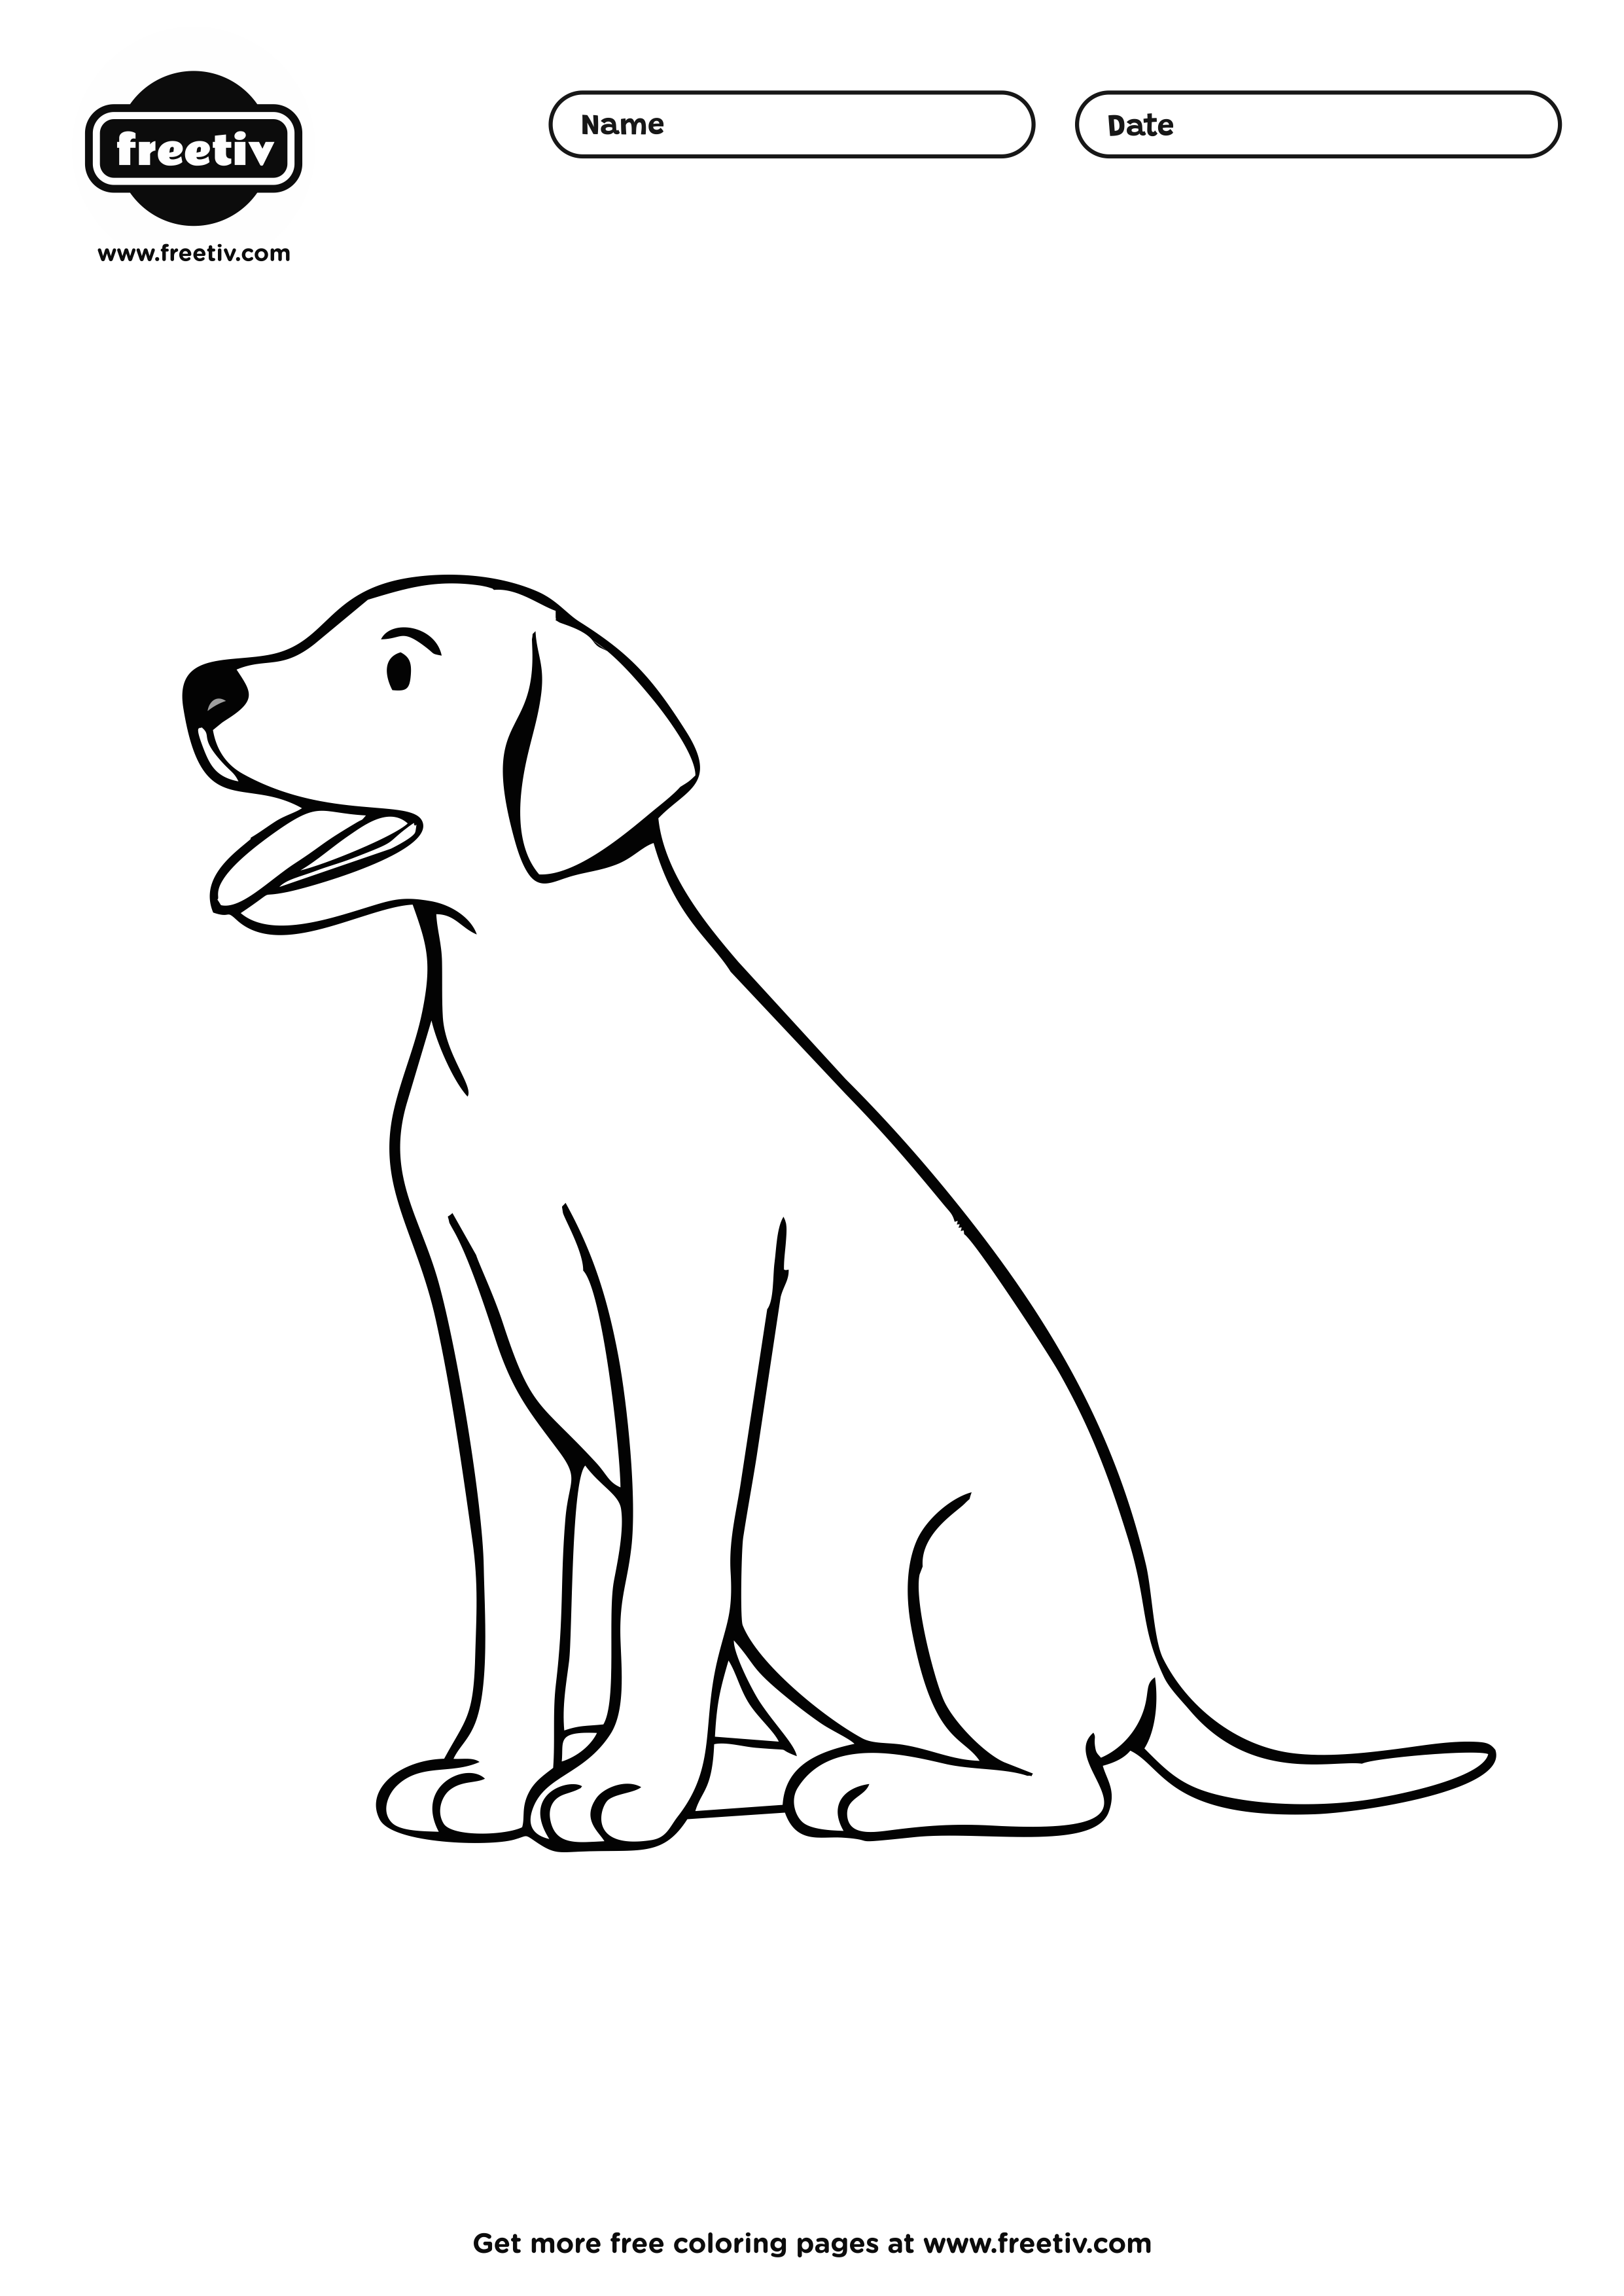 Dog Coloring Page 02